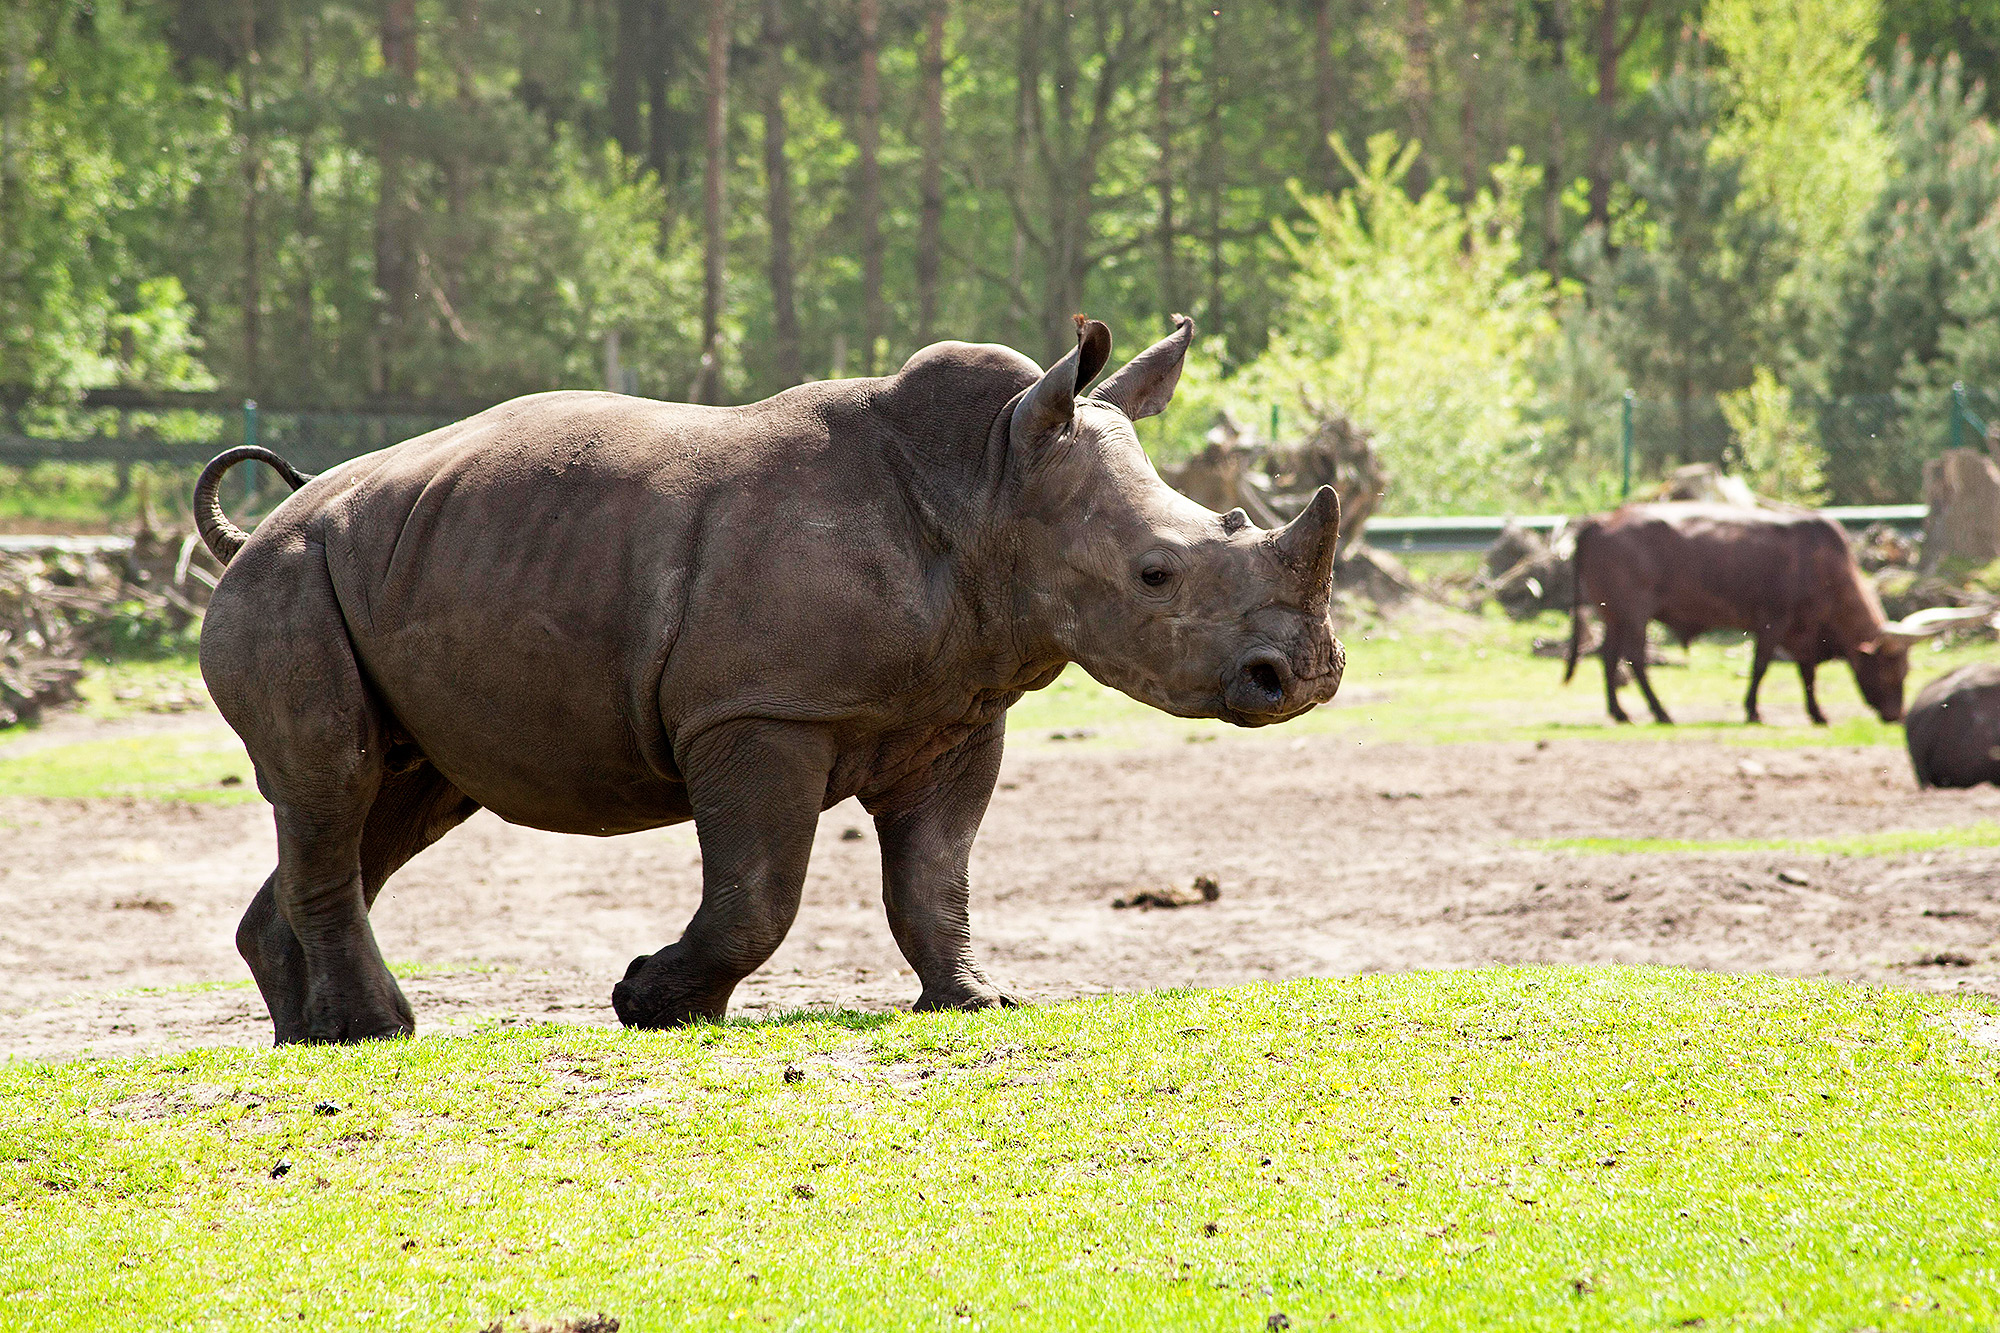 Toddler Who Fell Into Rhino Cage at Florida Zoo Suffered Lacerated Liver, Bruised Lung & Contusions